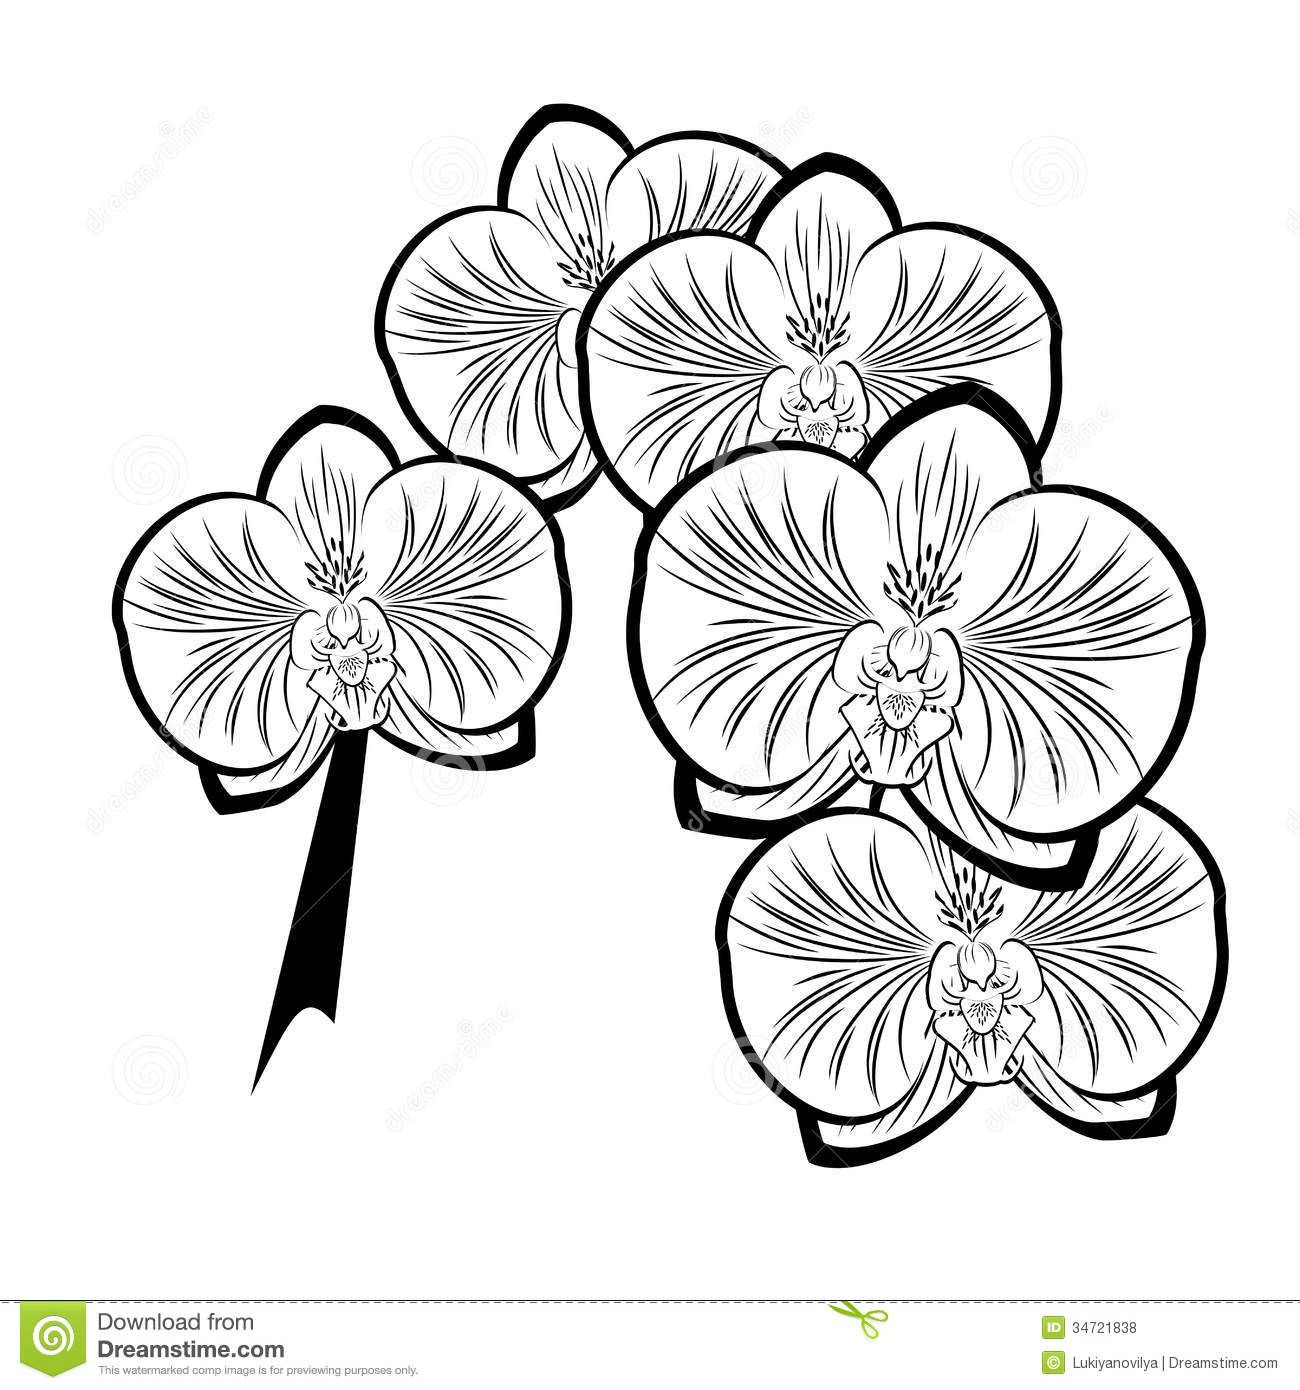 Black And White Drawing Of Orchid Flowers Royalty Free Stock